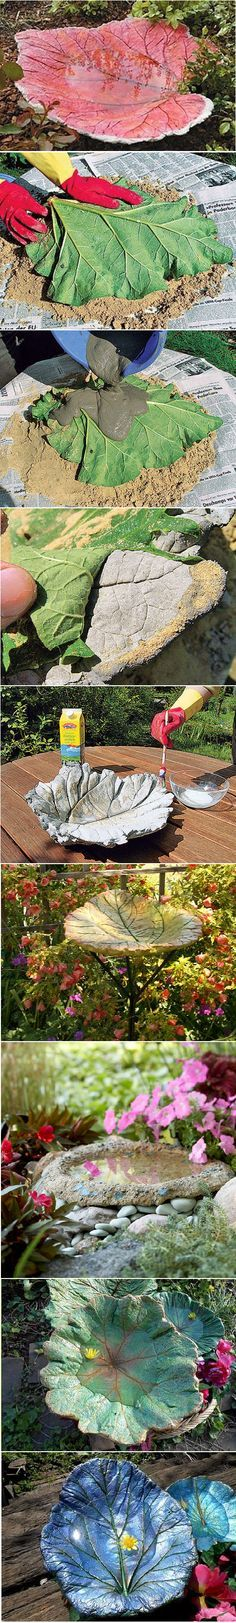 How To Make A Stand Cast Birdbath in Leaf Shape(Diy Garden Projects)